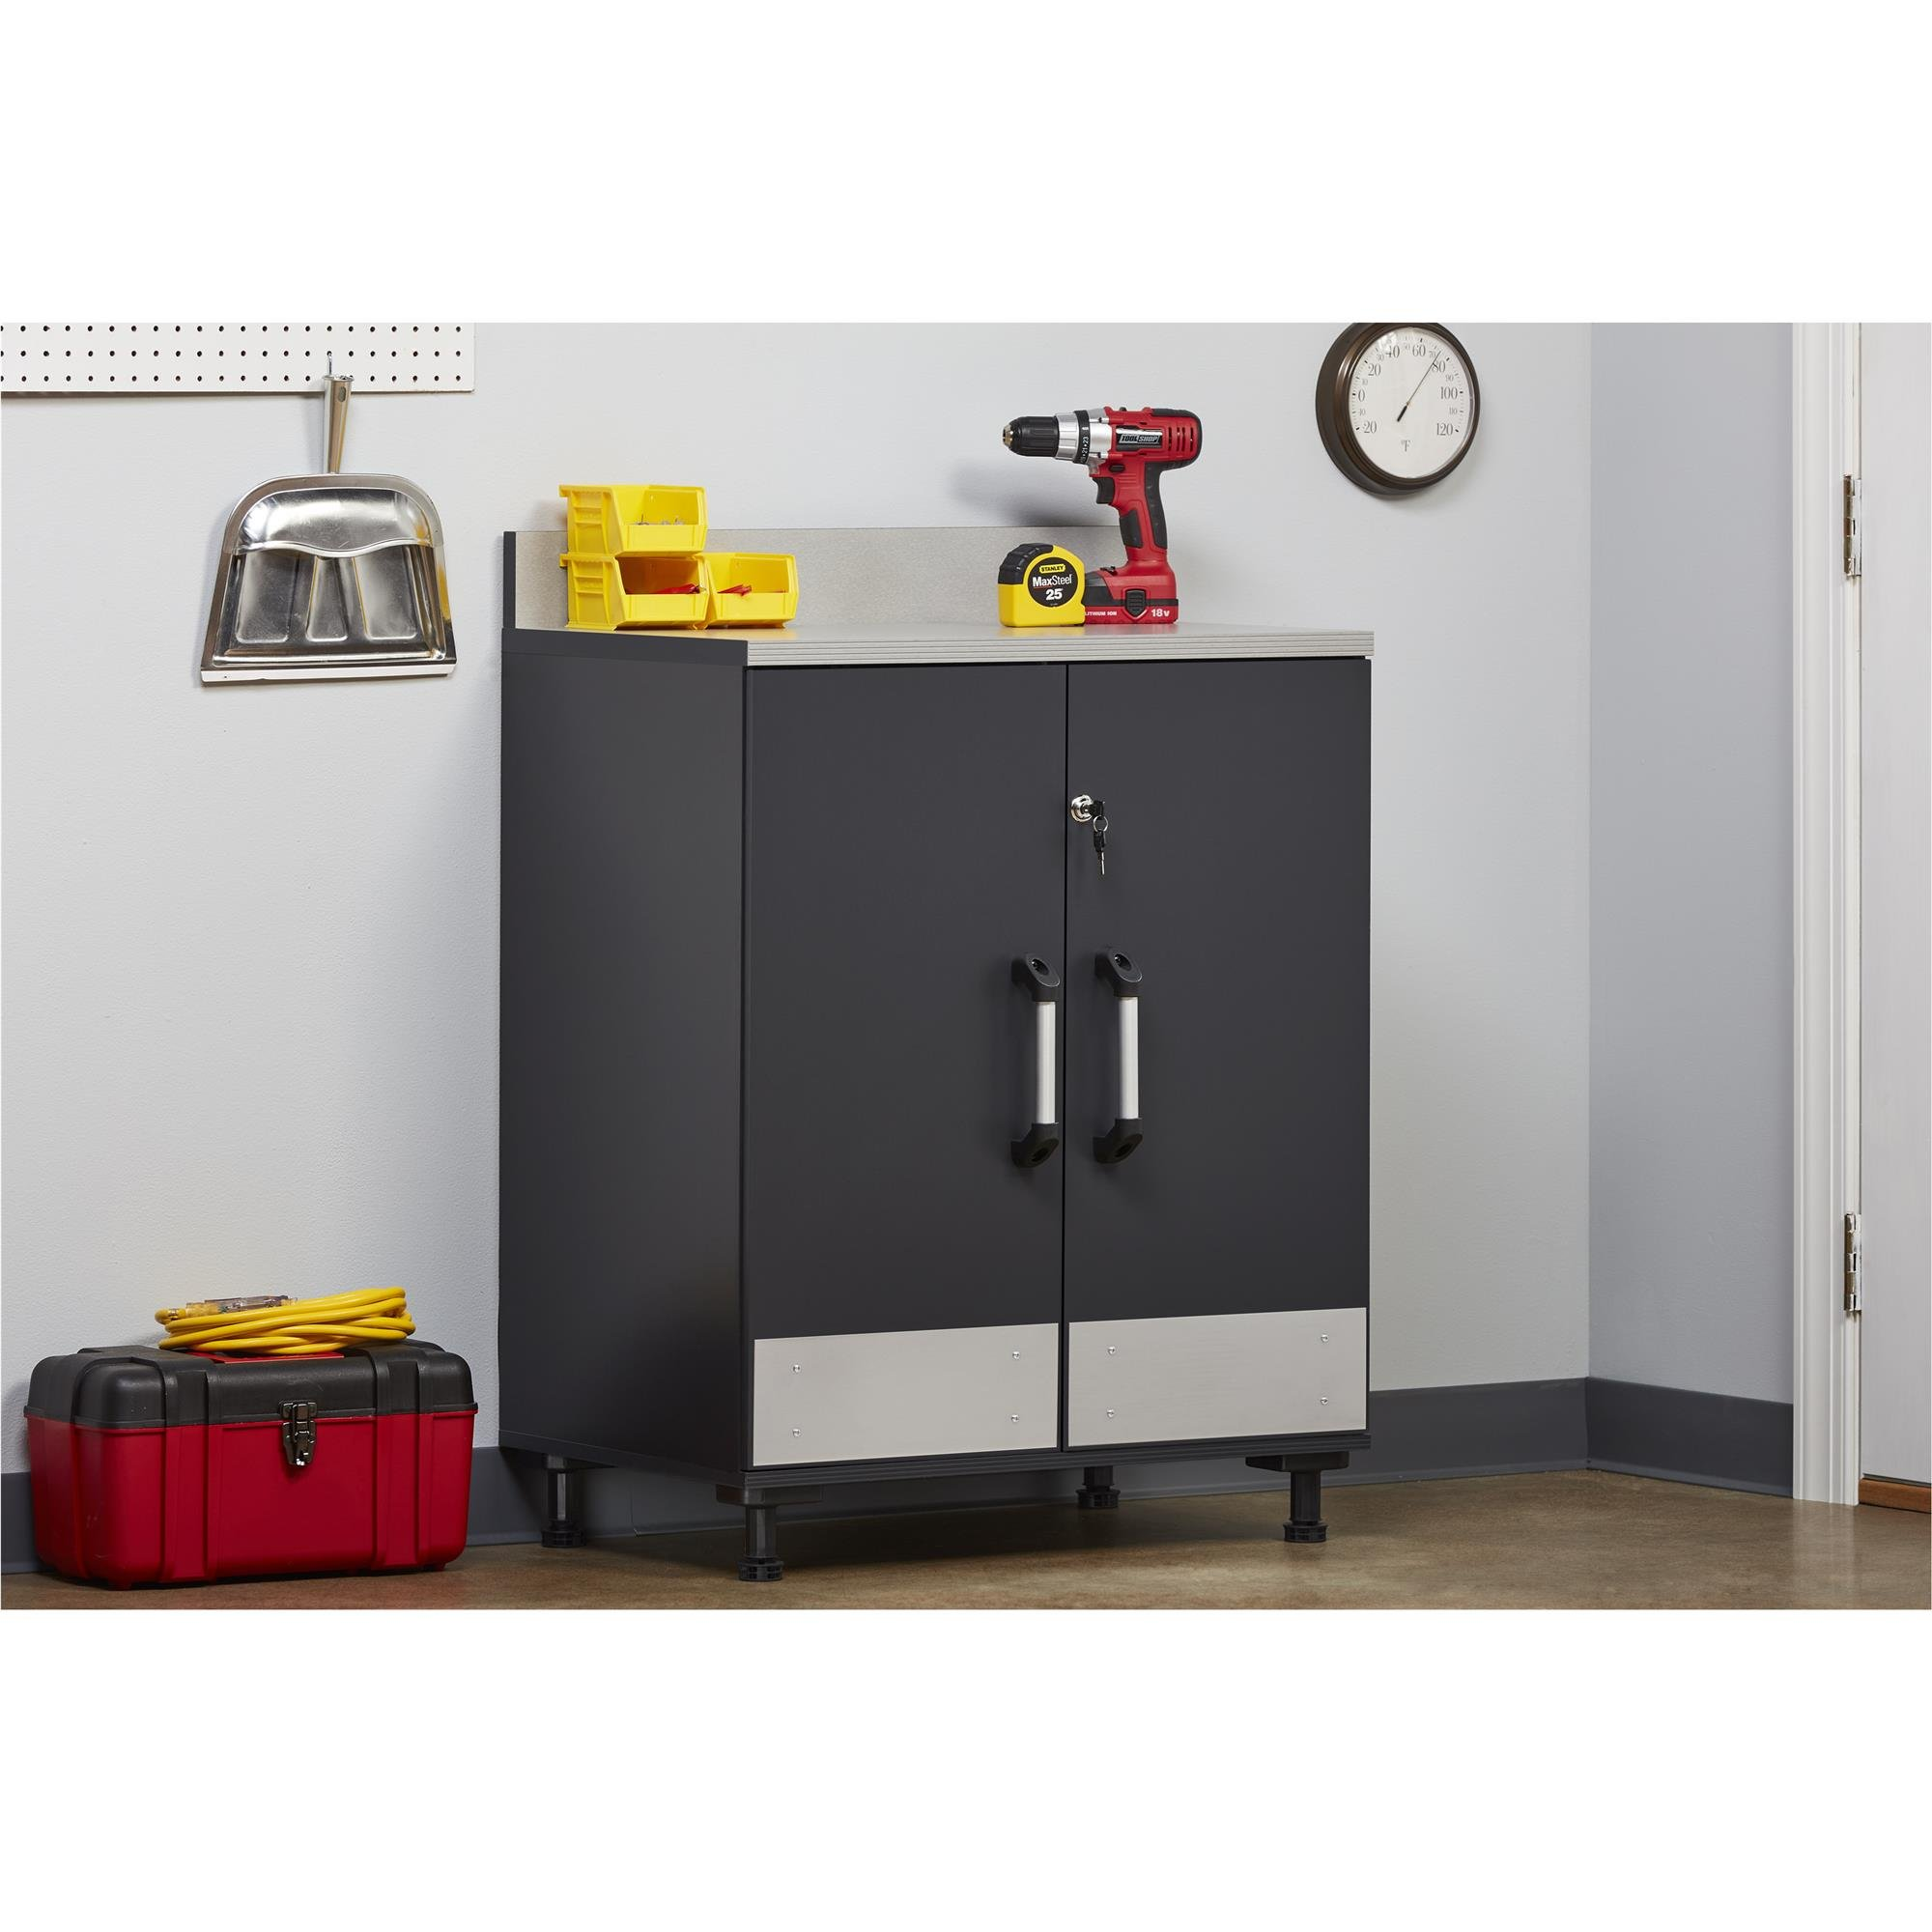 Ameriwood Home Boss -Base Cabinet 2 Door, Charcoal Gray by Ameriwood Home (Image #9)